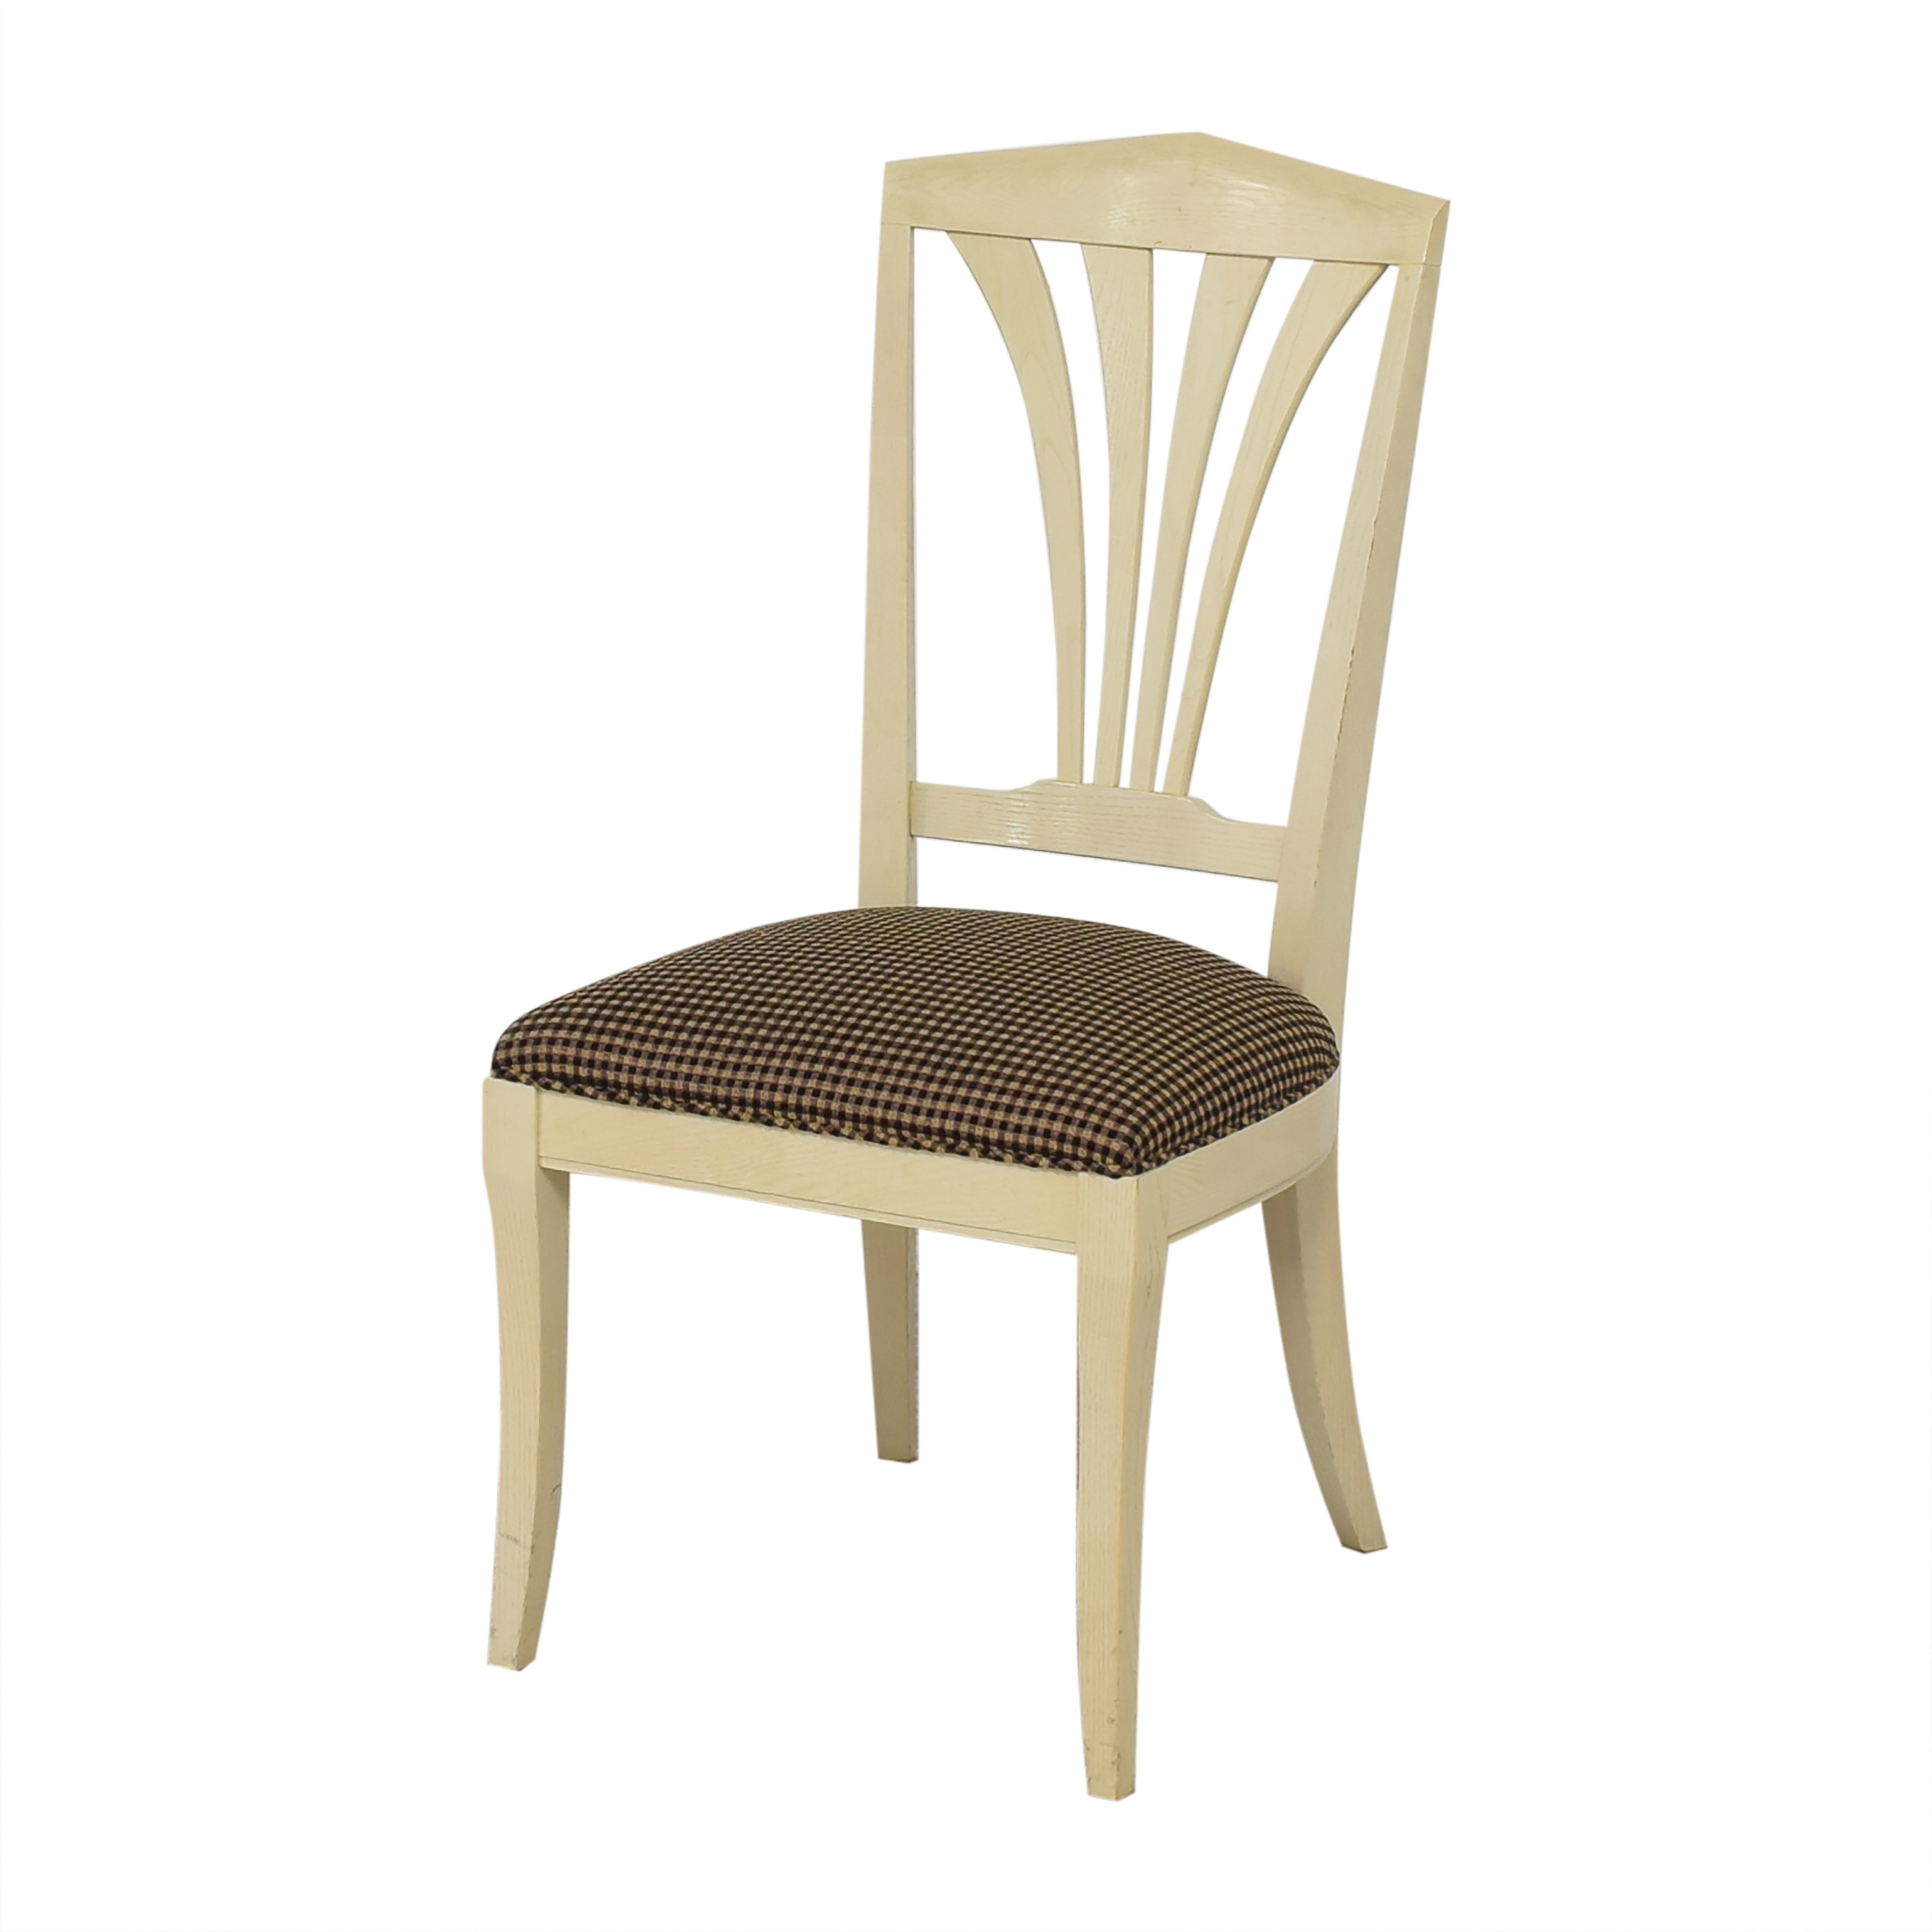 Ethan Allen Ethan Allen Dining Side Chairs dimensions